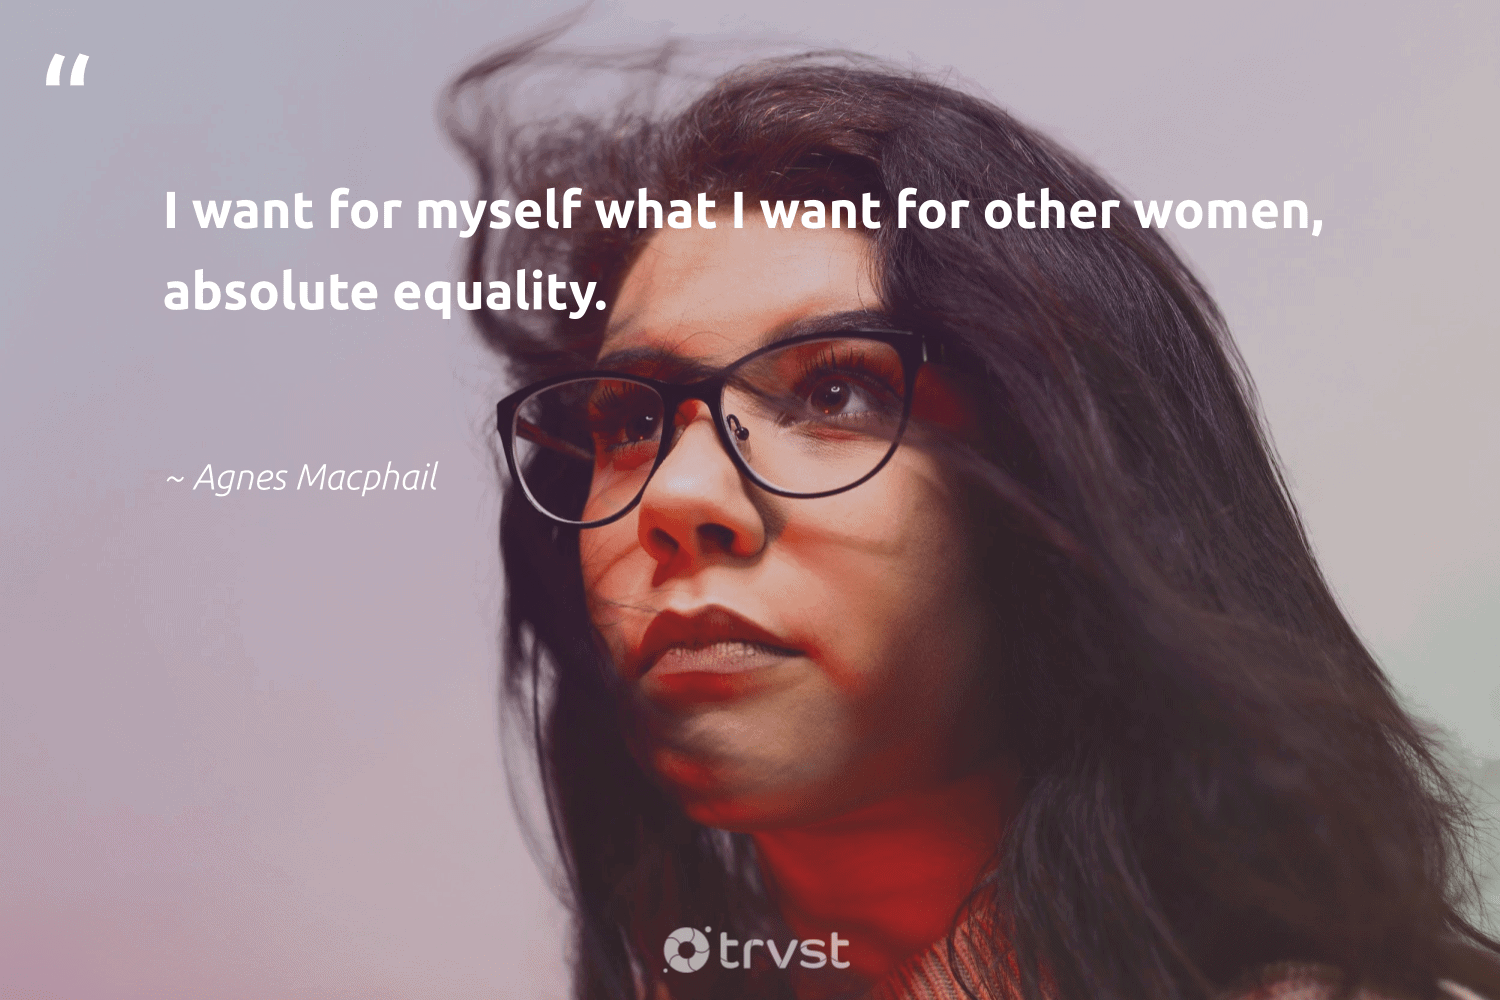 """""""I want for myself what I want for other women, absolute equality.""""  - Agnes Macphail #trvst #quotes #equality #women #equalopportunity #socialgood #giveback #takeaction #empowerment #bethechange #makeadifference #dotherightthing"""